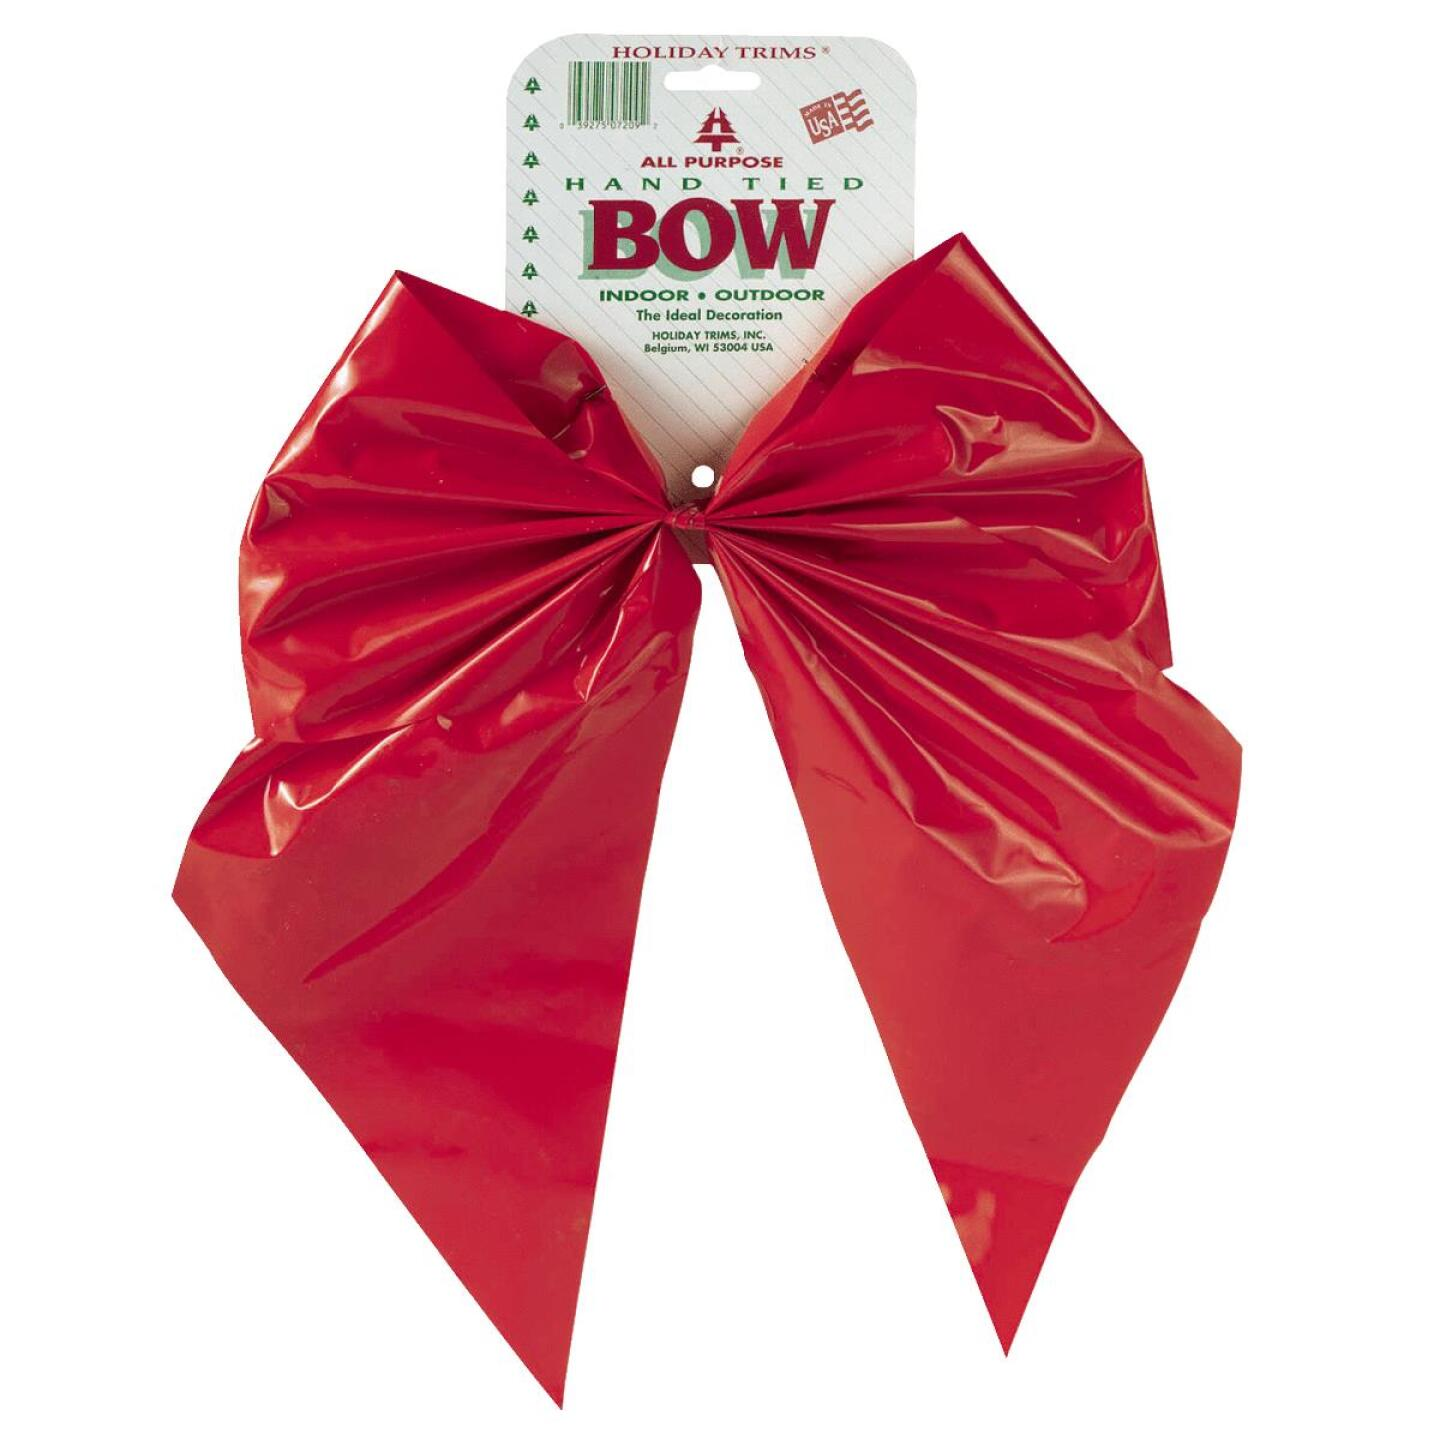 Holiday Trims 2-Loop 11 In. W. x 15-1/2 In. L. Red Plastic Outdoor Christmas Bow Image 1